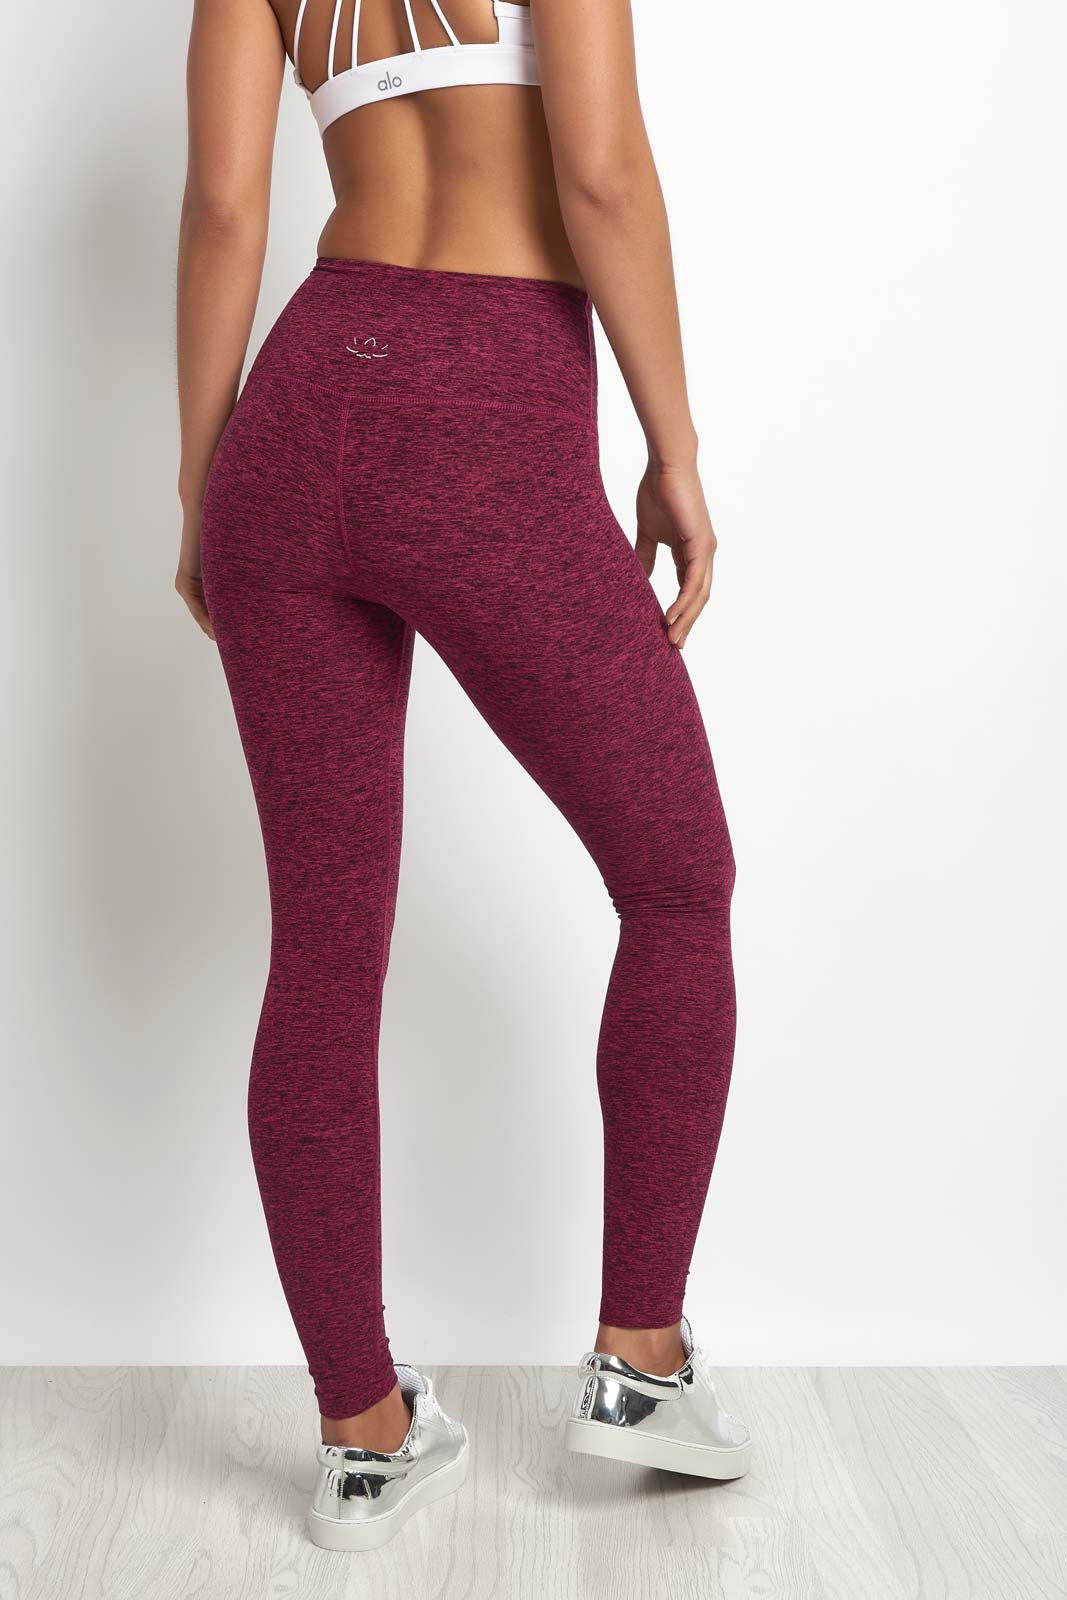 Beyond Yoga Spacedye High Waisted Legging Plumberry/Black image 2 - The Sports Edit